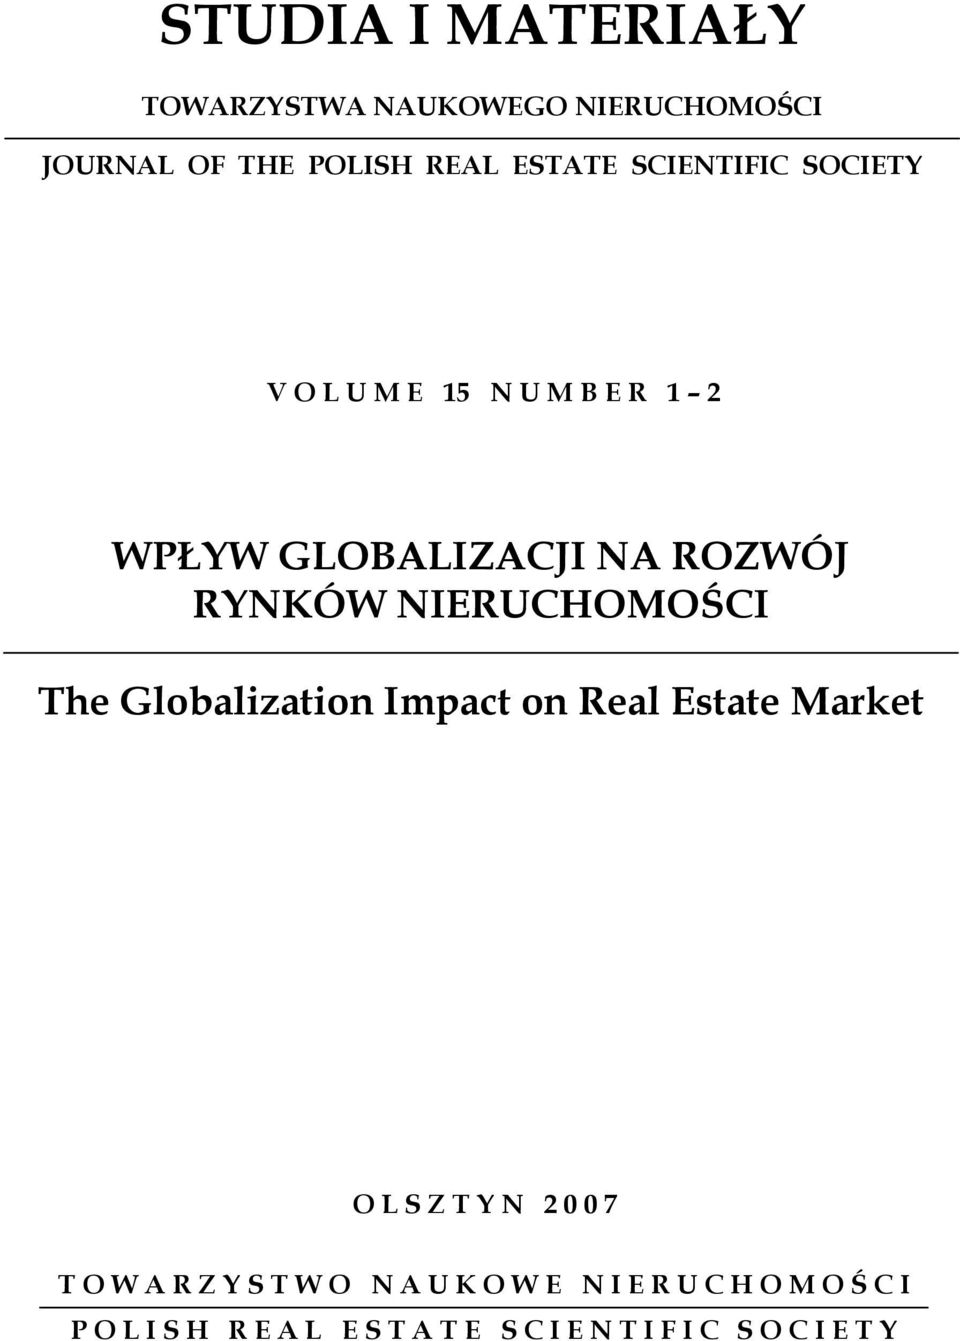 NIERUCHOMOŚCI The Globalization Impact on Real Estate Market O L S Z T Y N 2 0 0 7 T O W A R Z Y